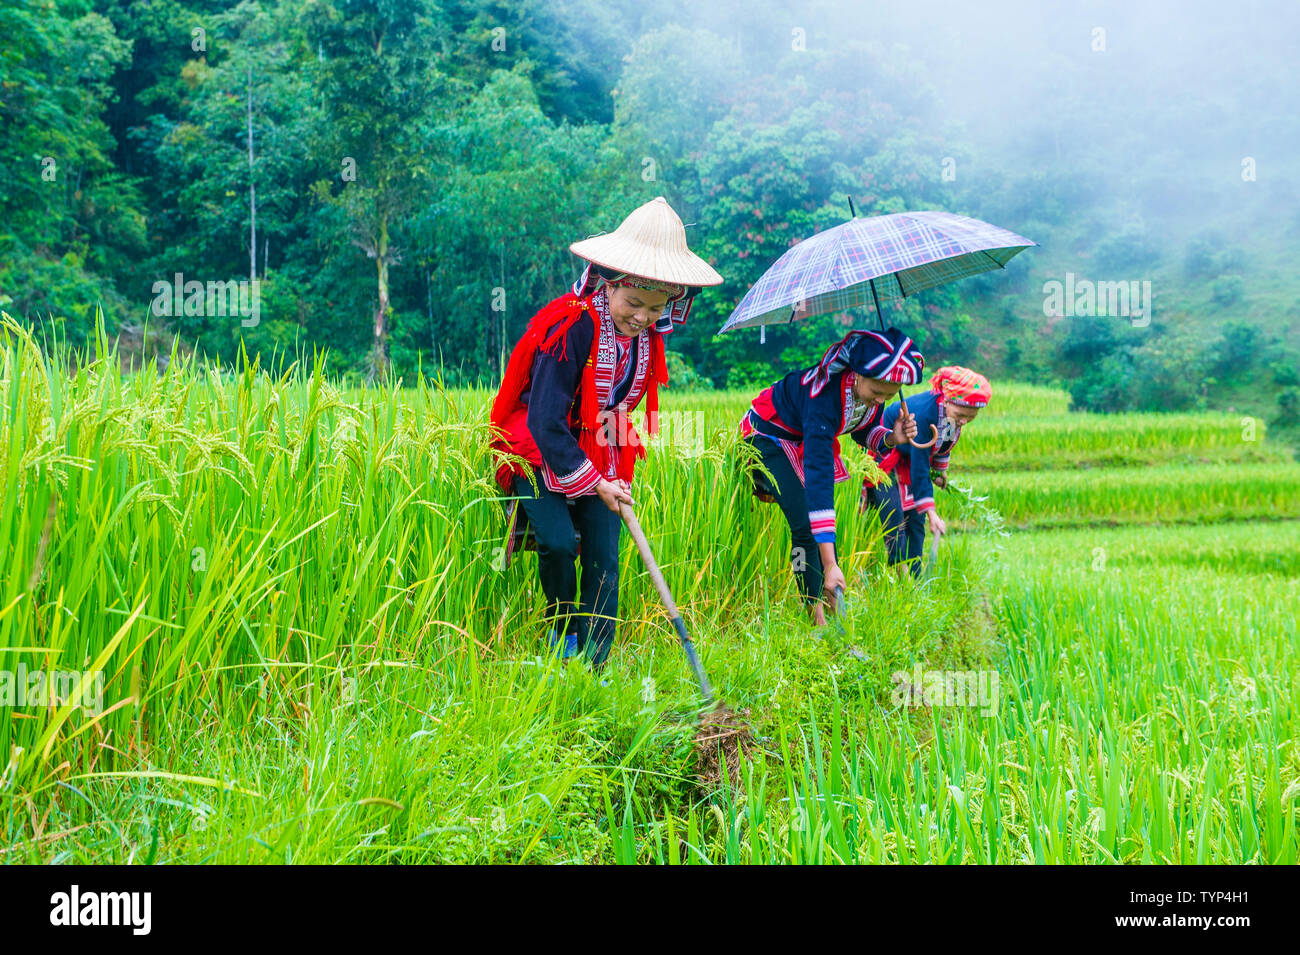 Women from the Red Dao minority in a village near Ha Giang in Vietnam - Stock Image